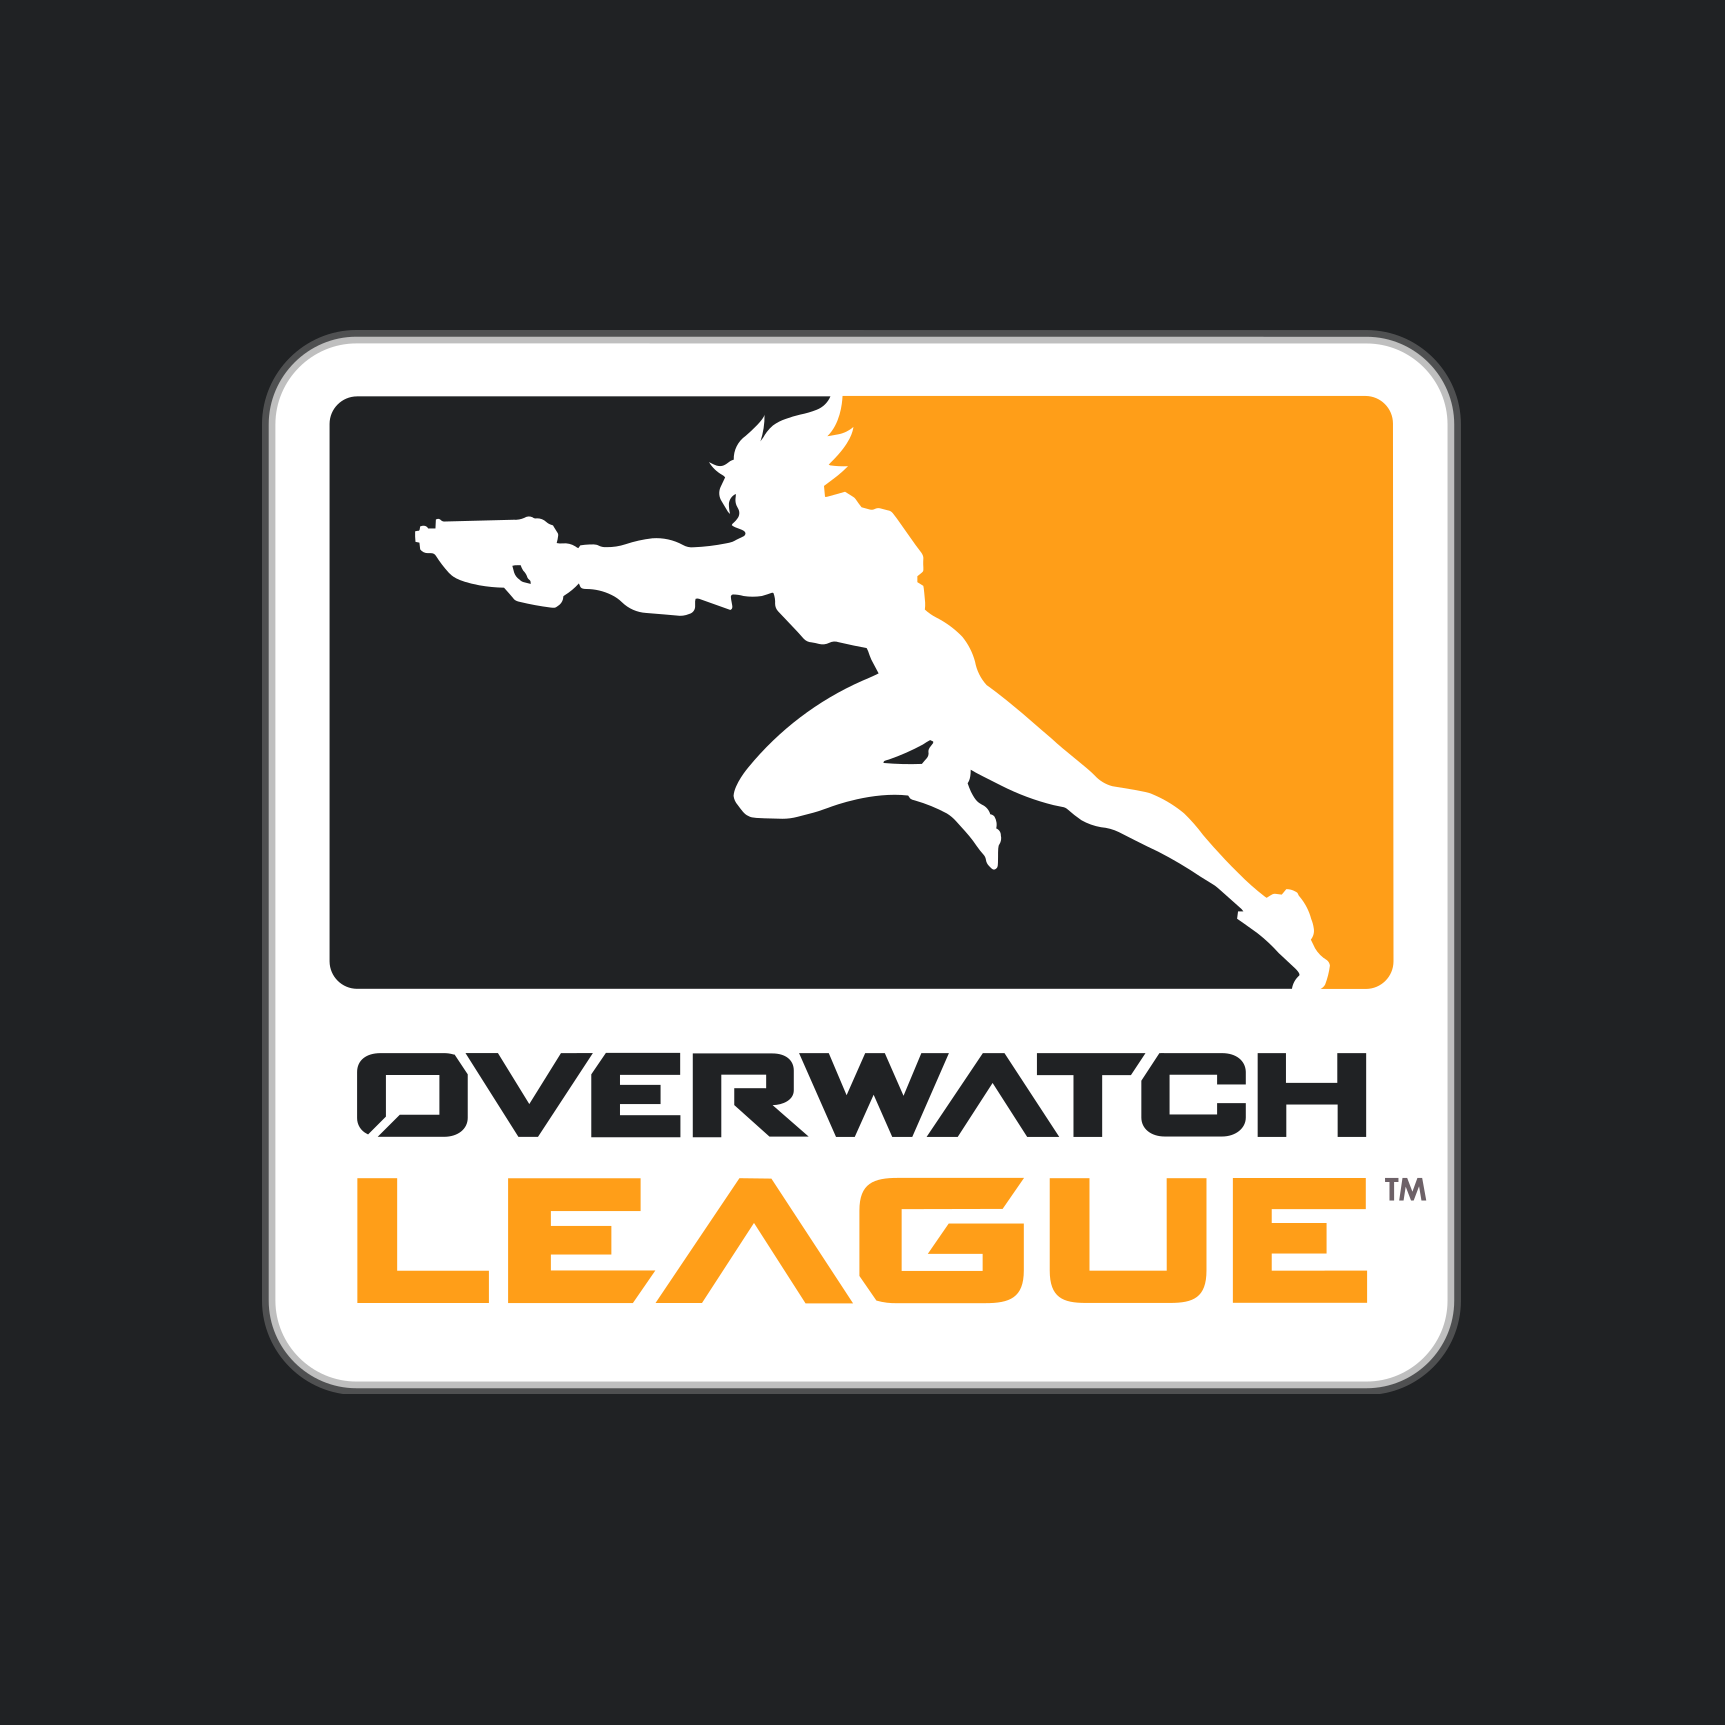 Overwatch League / Activision Blizzard Esports